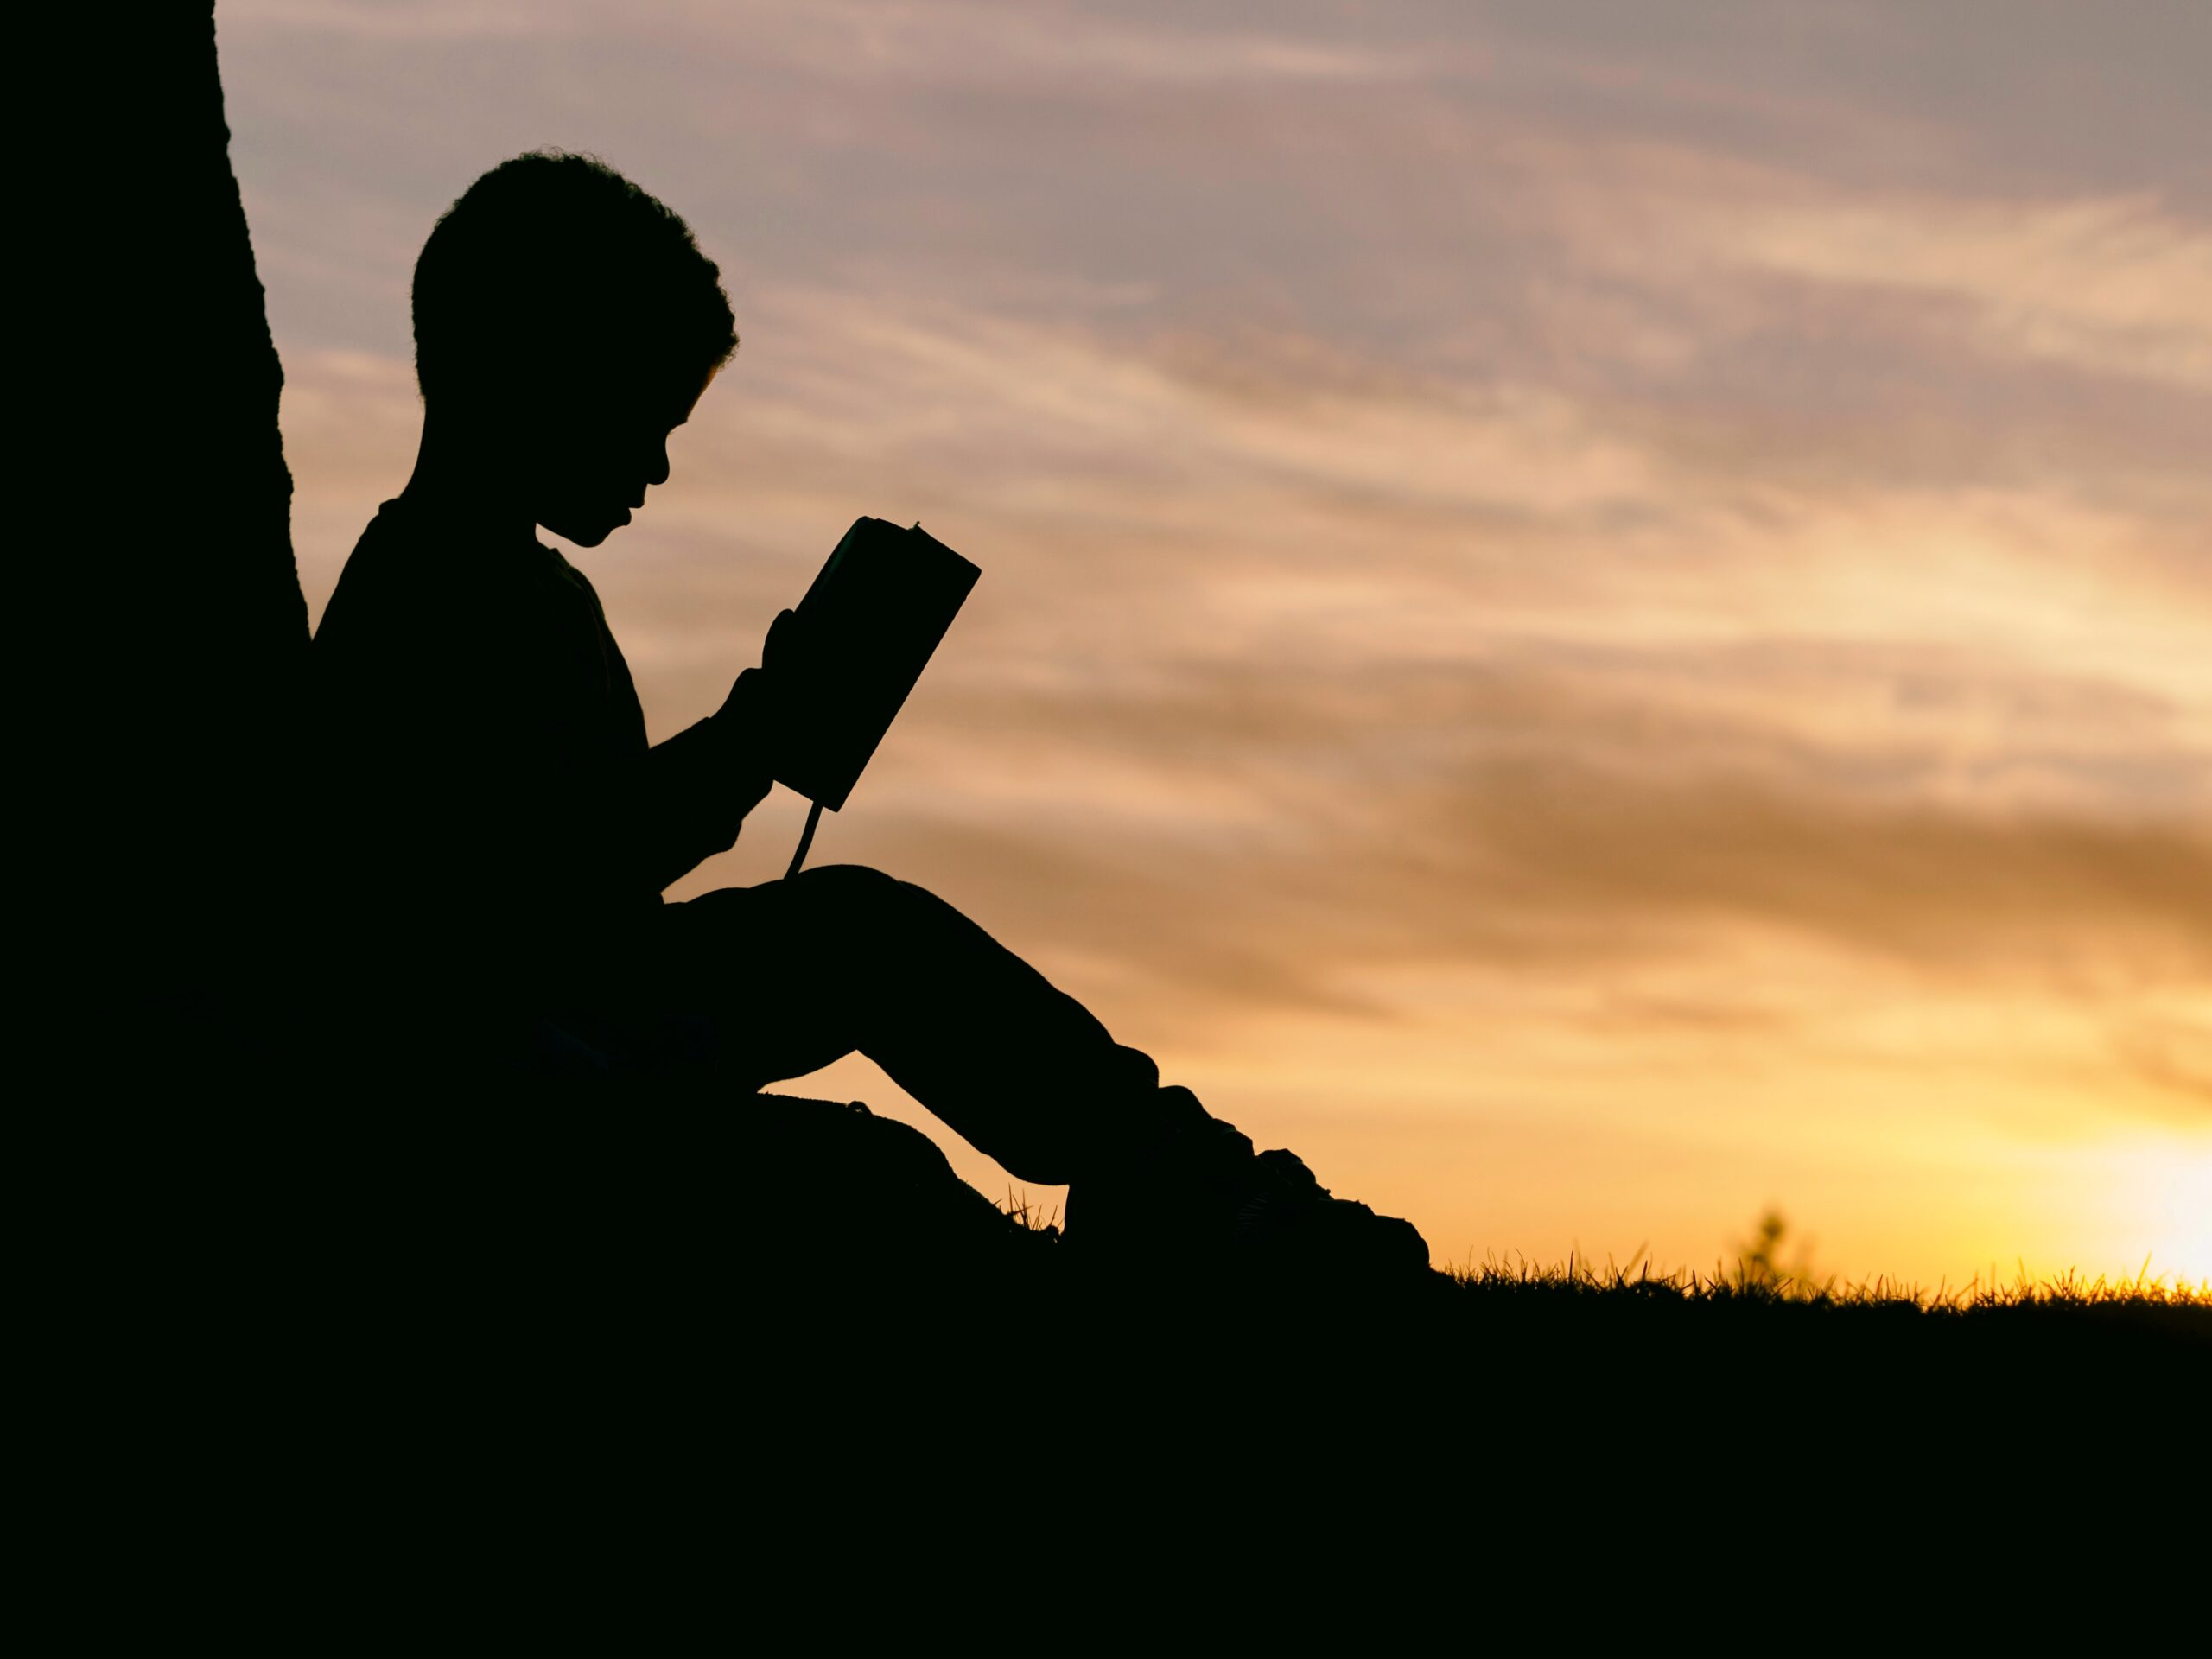 silhouette of child sitting reading book behind tree during sunset